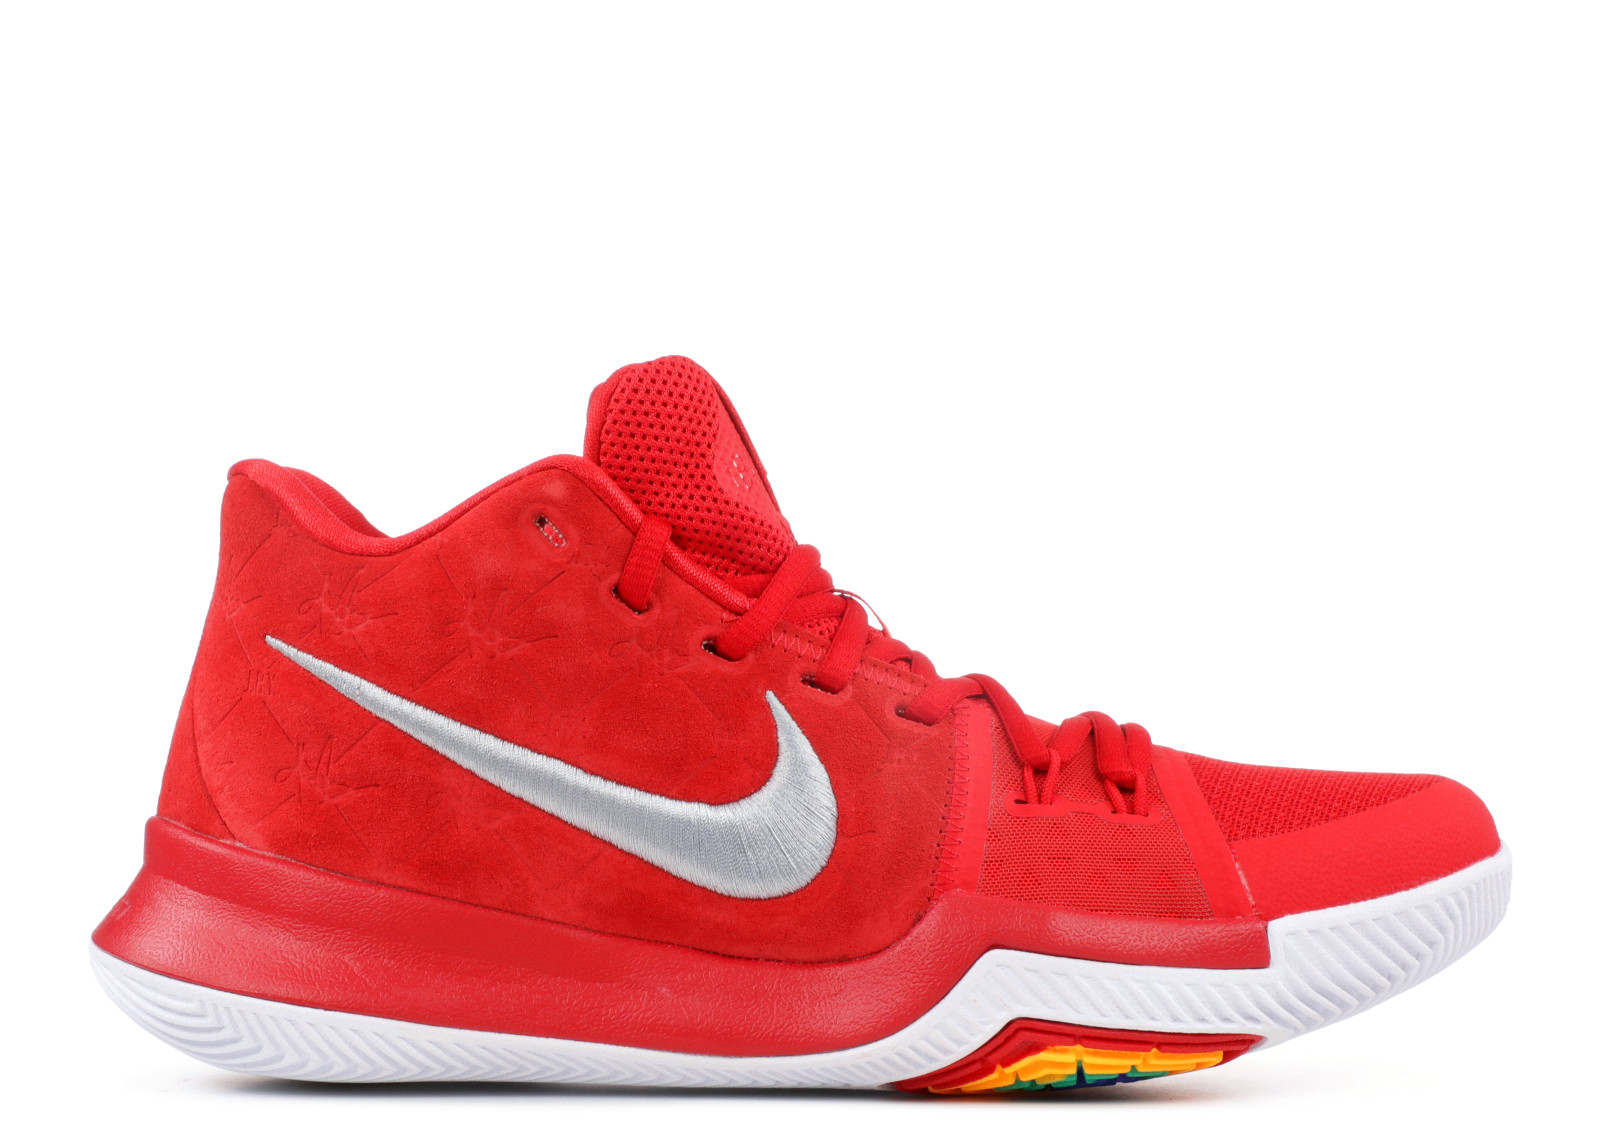 5adc3d7754f3 Nike - Men - Kyrie 3 - 852395-601 - Size 10